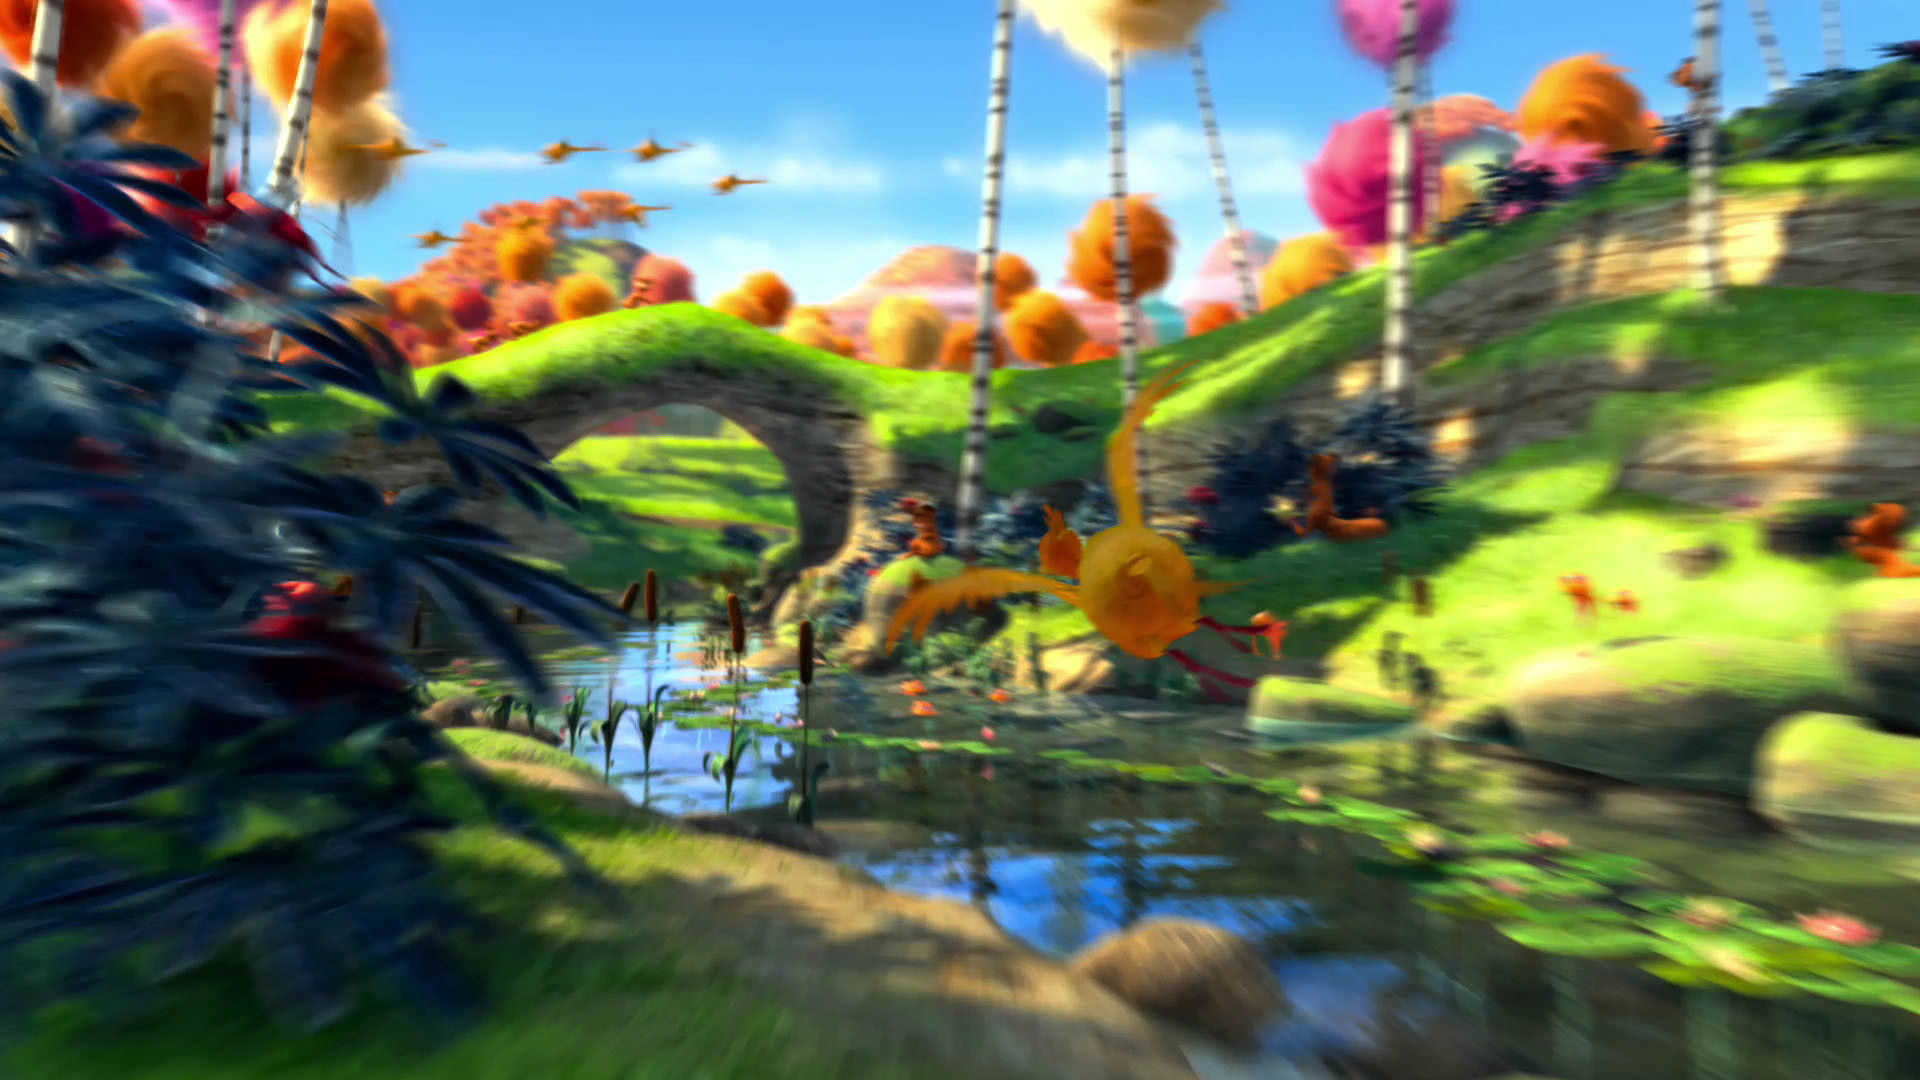 Res: 1920x1080, Dr Seuss The Lorax